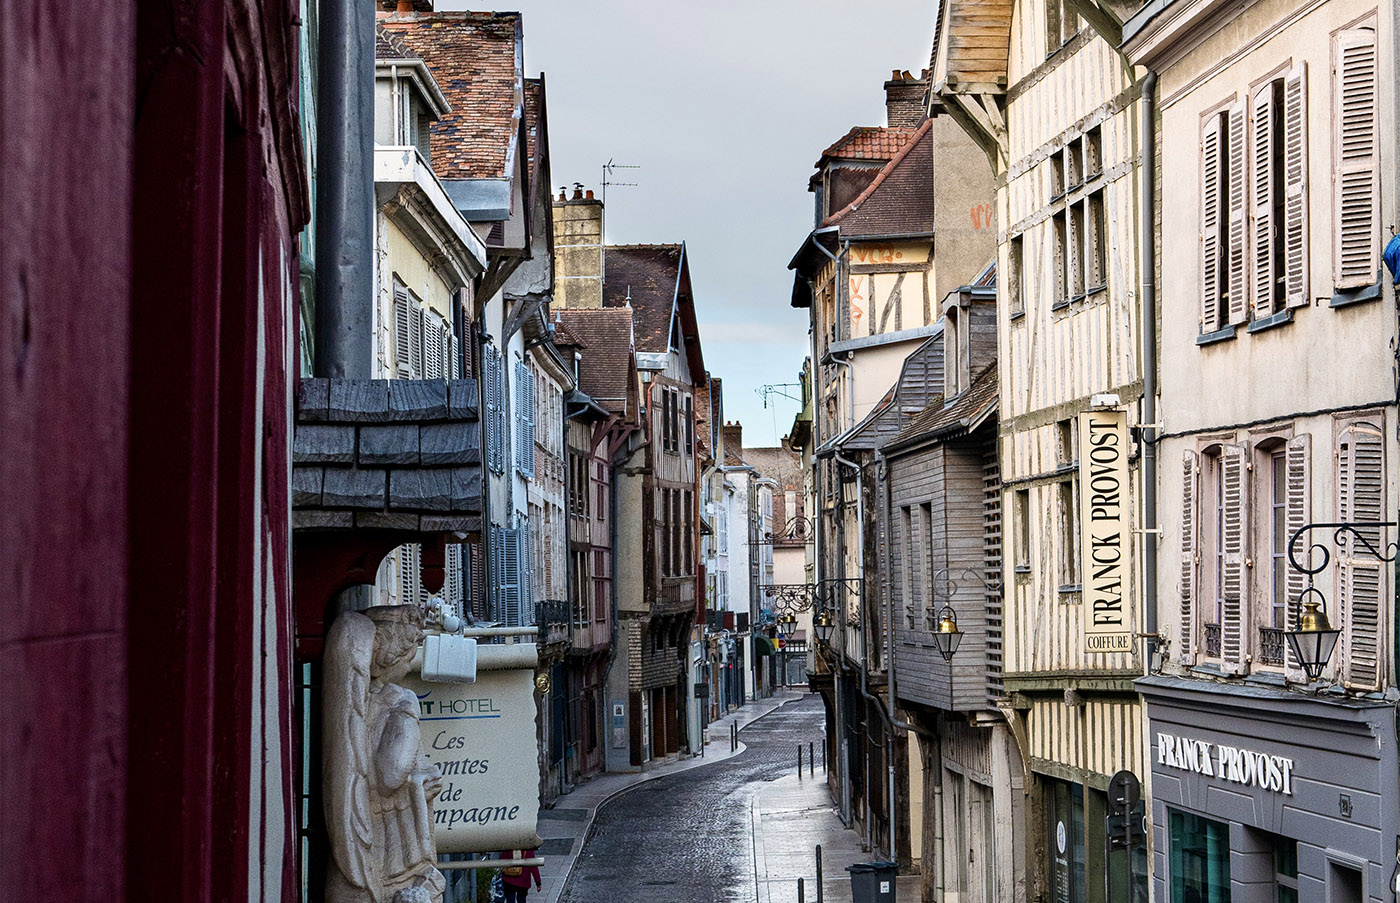 Typical street of Troyes in the Aube